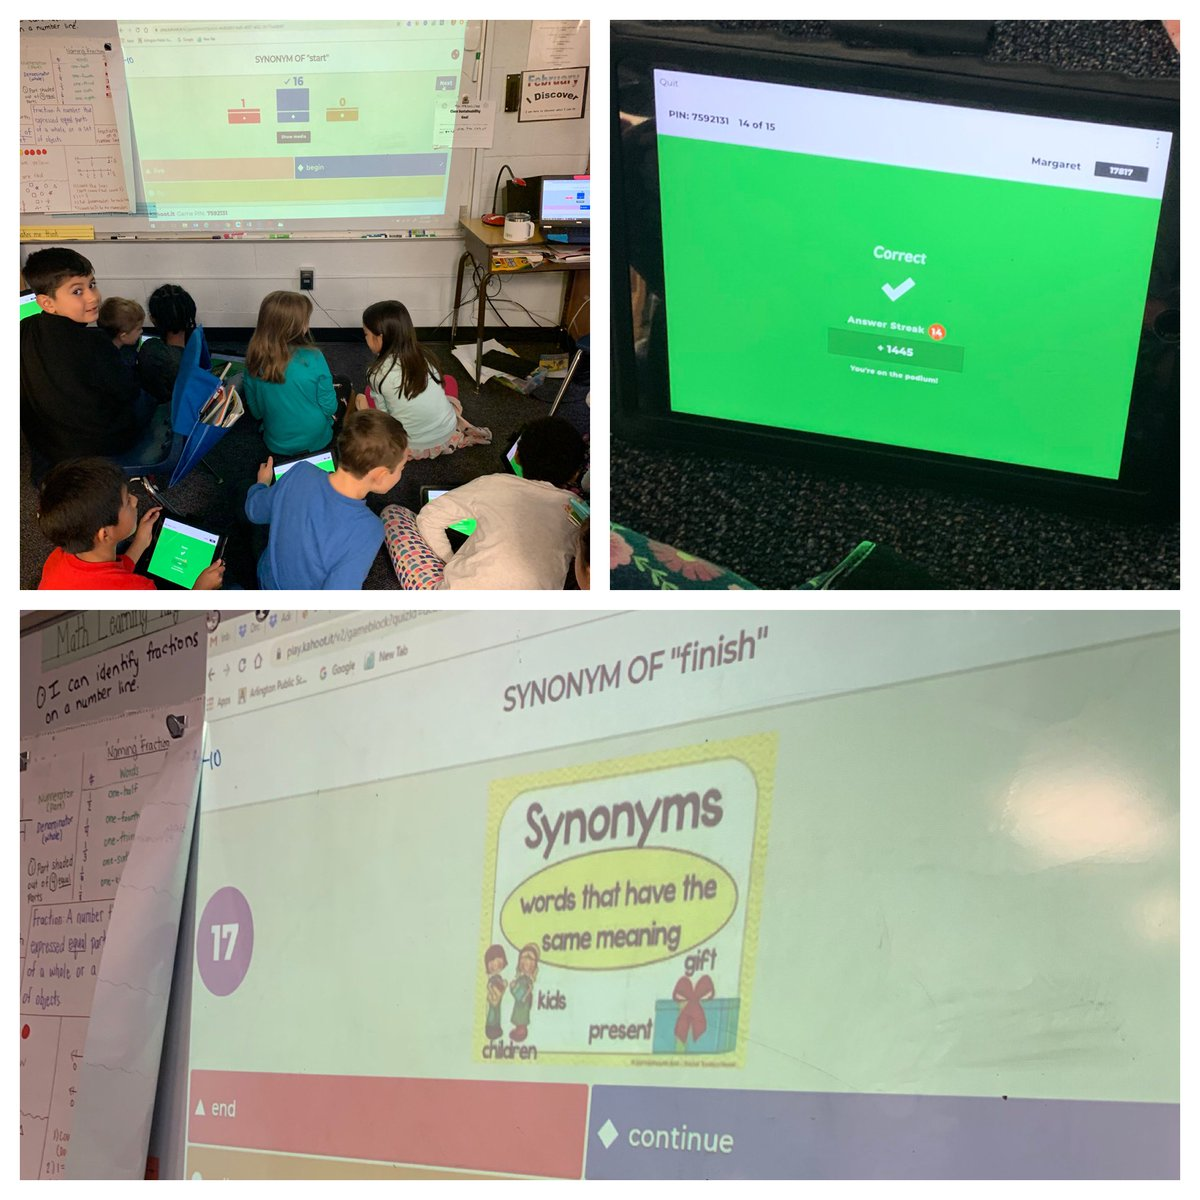 During morning meeting we practiced synonyms through the use of our favorite new app! <a target='_blank' href='http://twitter.com/GetKahoot'>@GetKahoot</a> <a target='_blank' href='http://twitter.com/CampbellAPS'>@CampbellAPS</a> <a target='_blank' href='https://t.co/xY0lknQKGL'>https://t.co/xY0lknQKGL</a>